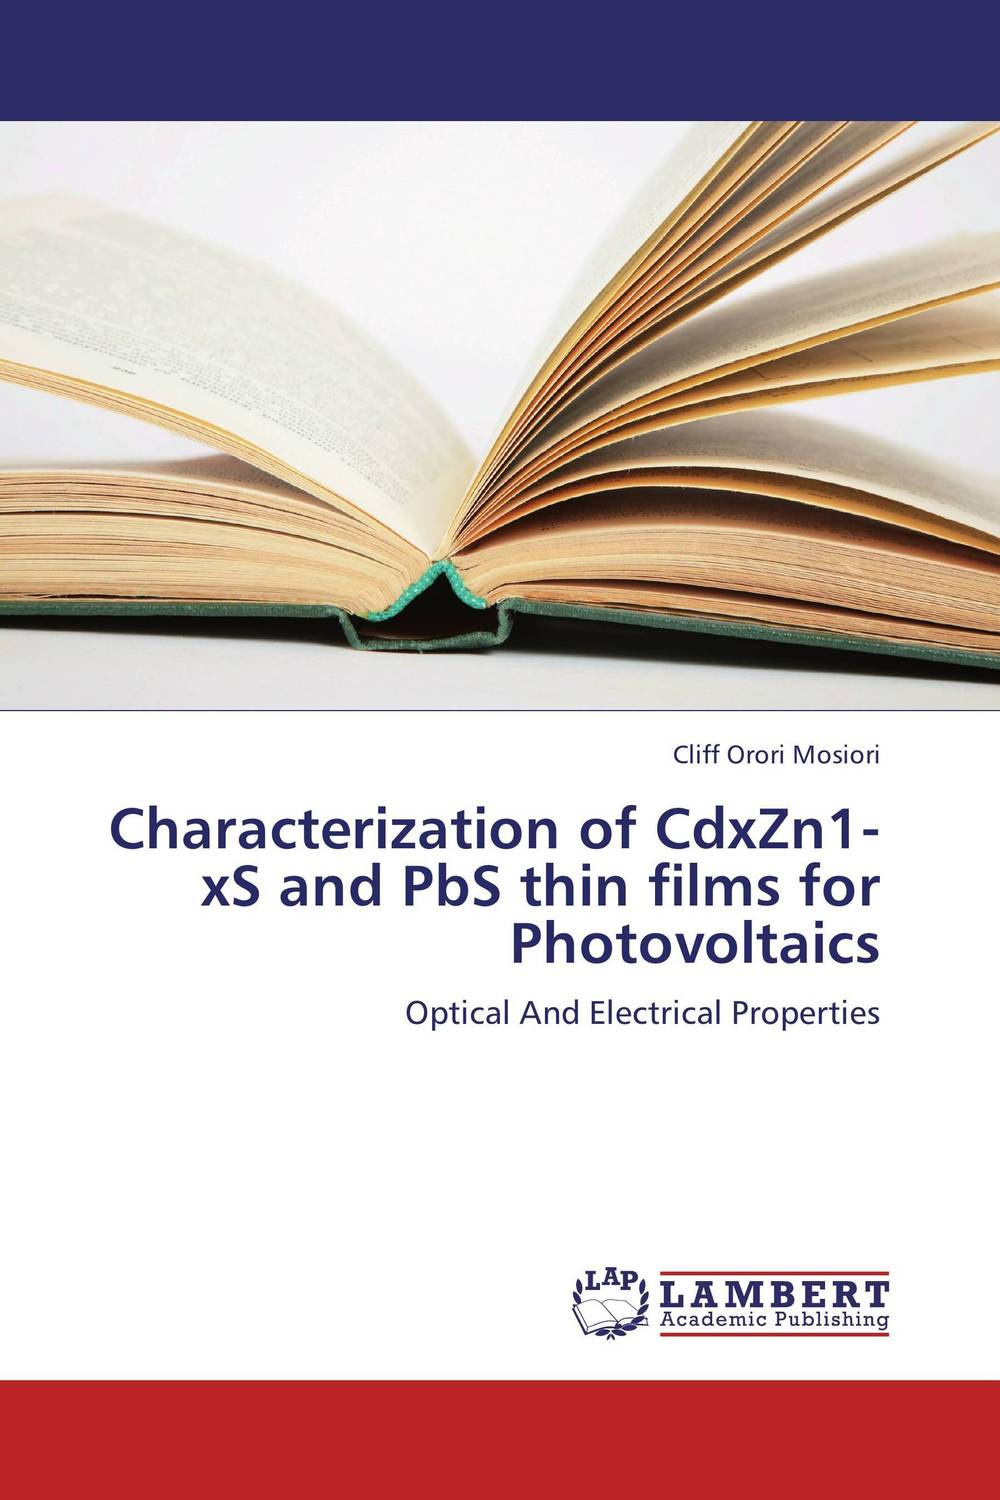 Characterization of CdxZn1-xS and PbS thin films for Photovoltaics study of point defects in solids and thin films